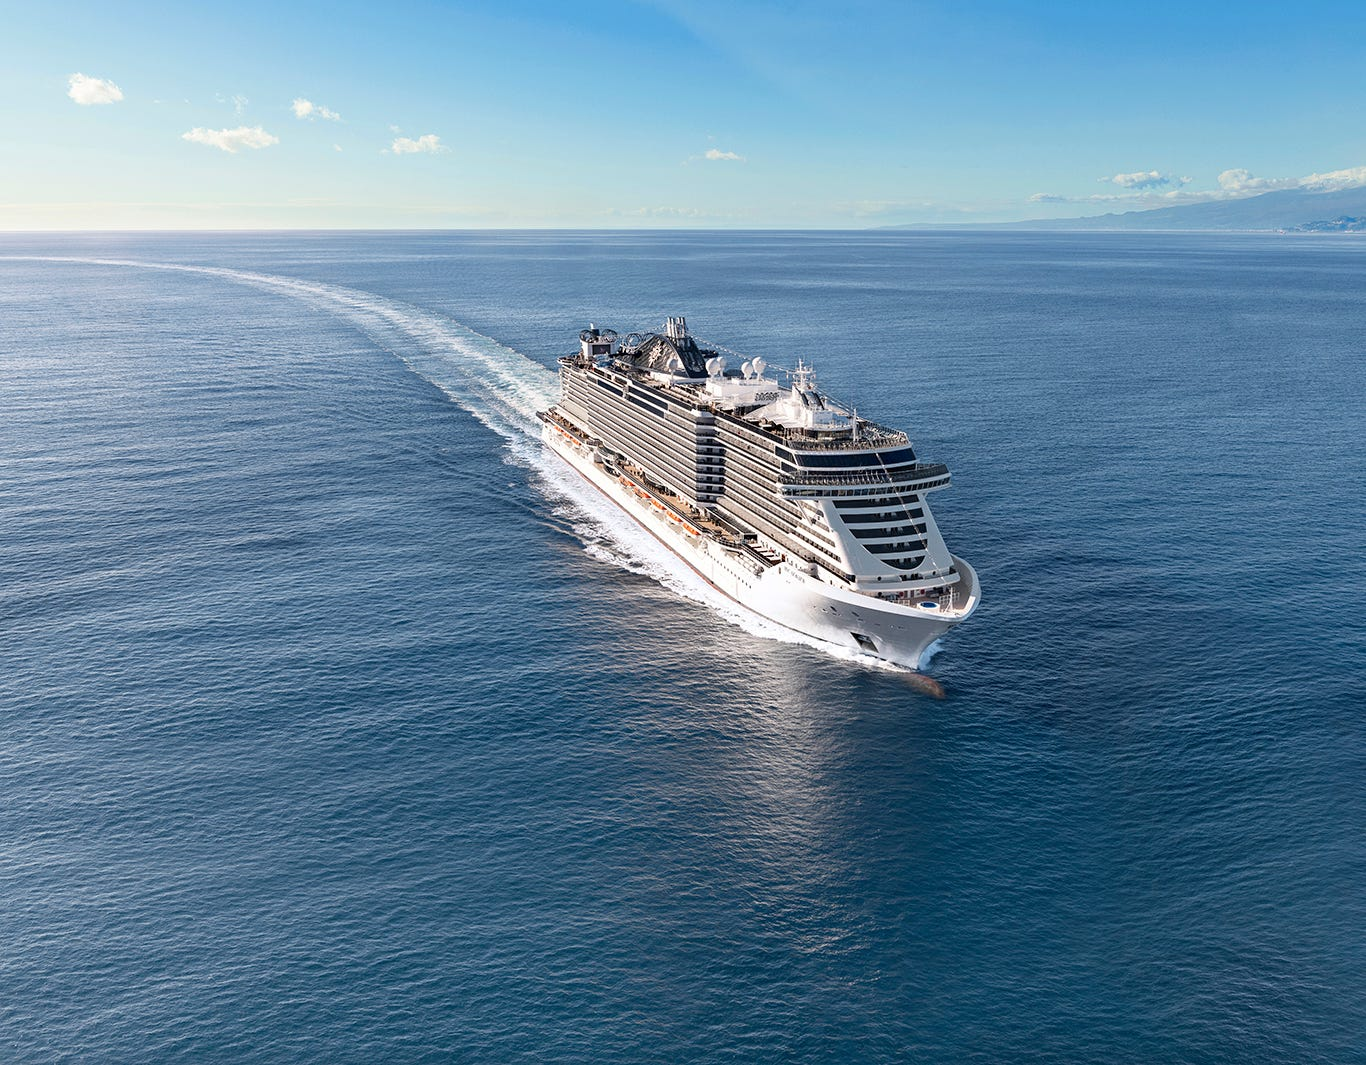 First look: Inside MSC Cruises' new MSC Seaview, one of the world's largest cruise ships   USA Today